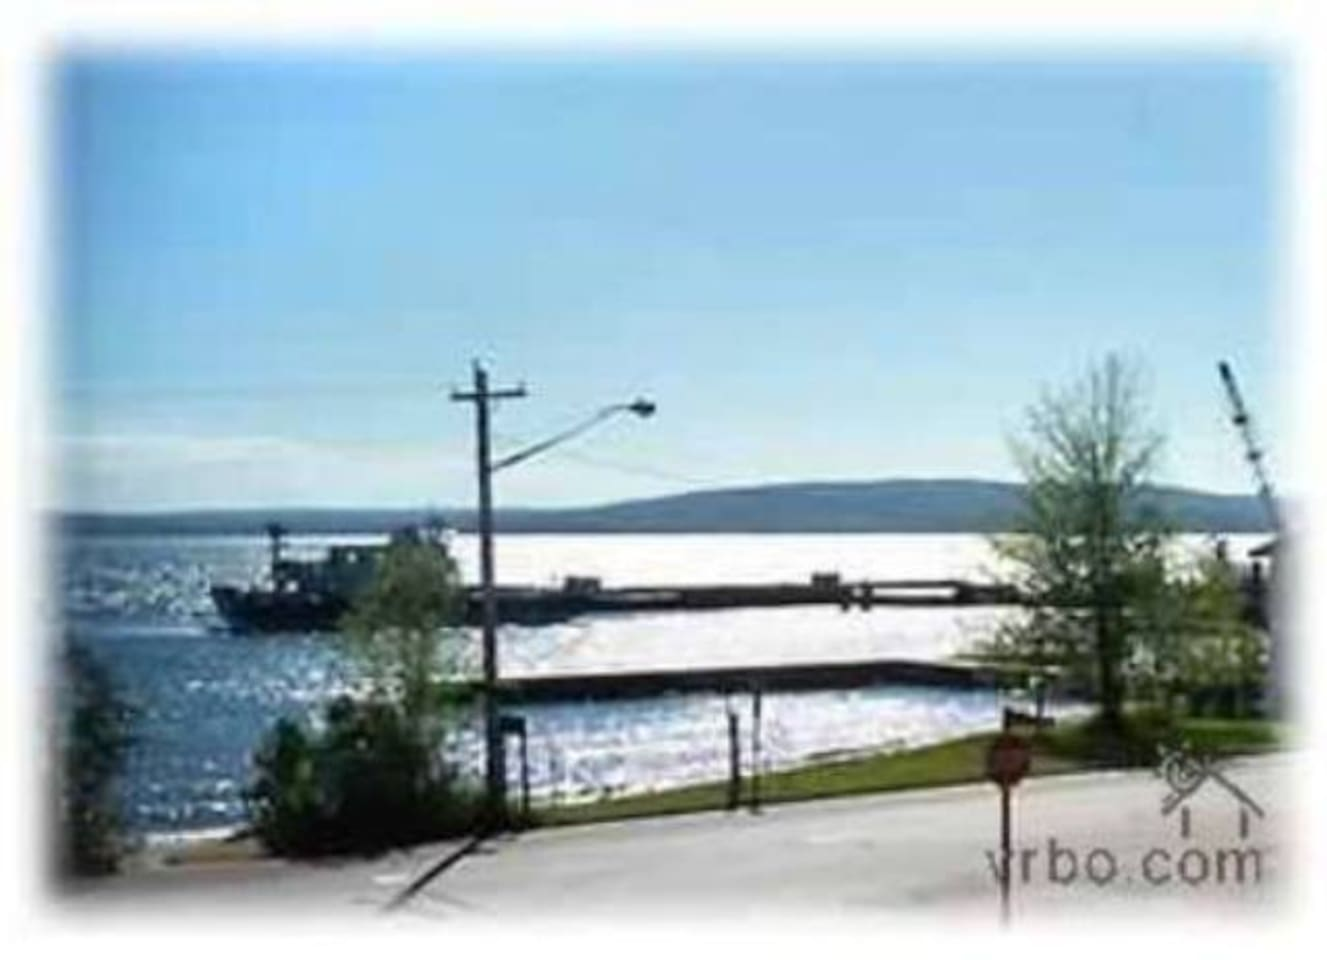 The ferry landing is only two blocks away!